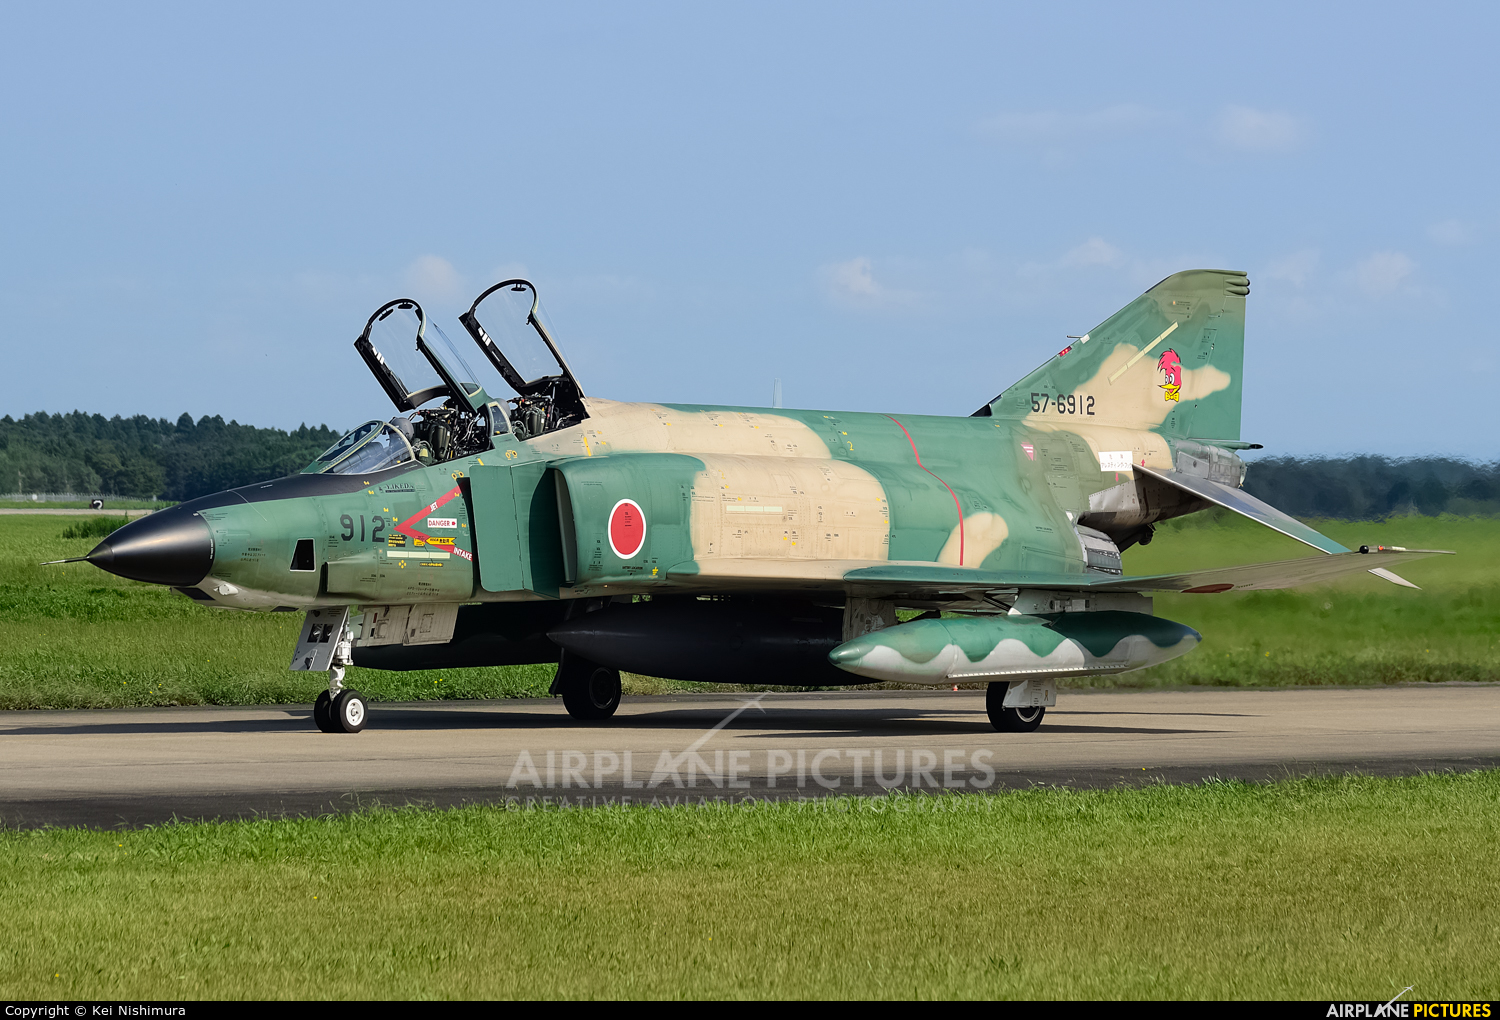 Japan - Air Self Defence Force 57-6912 aircraft at Ibaraki - Hyakuri AB